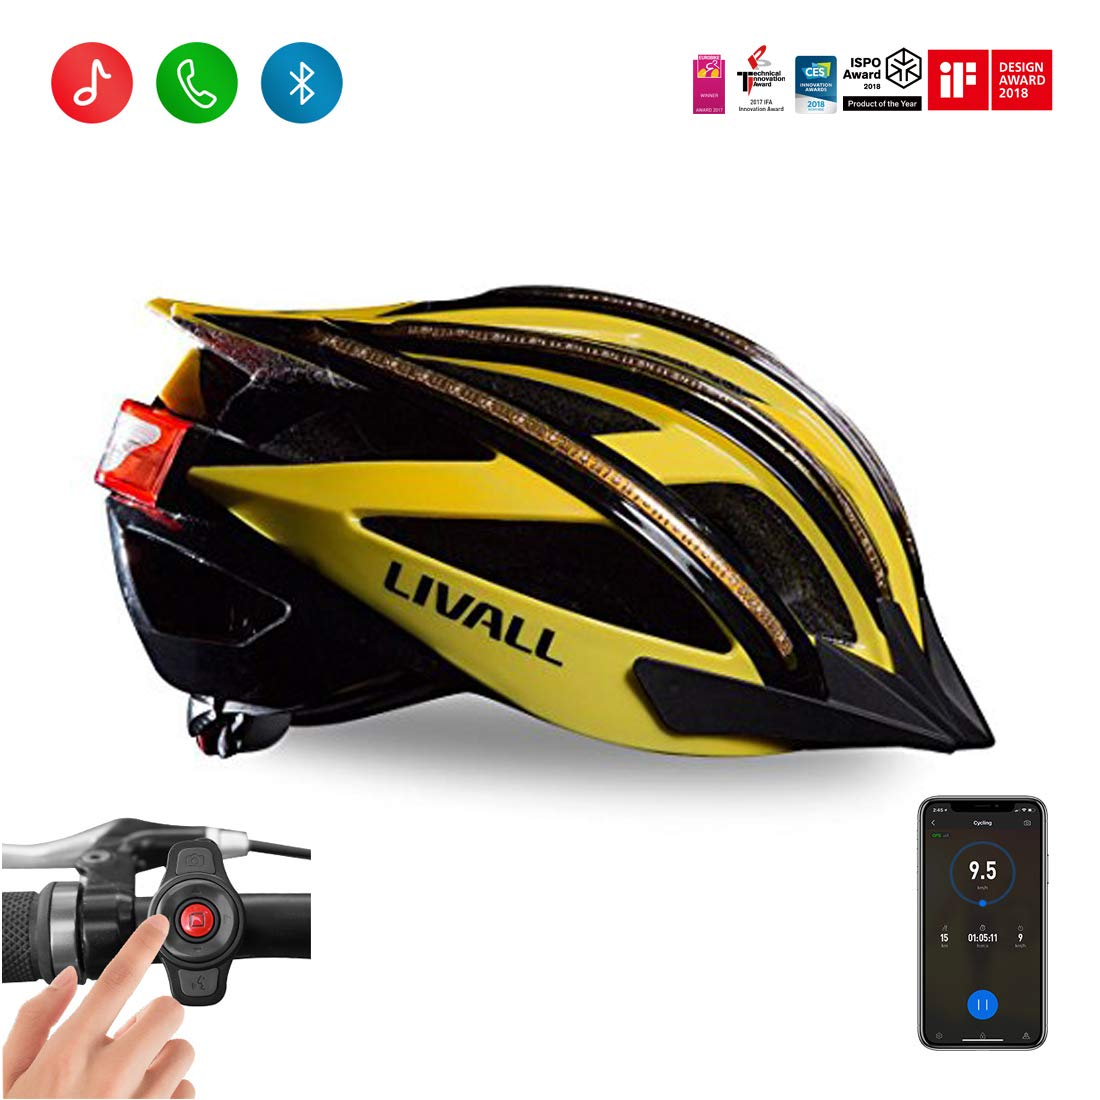 LIVALL BH100 First Smart Bling Bike Helmet with Lights LED on The top and Back, Built-in Windbreak Mic, G-Sensor, Bluetooth Speaker, with Bling Jet Controller, 450g Certified Cycling Helmet LIVALL Tech Co. Ltd